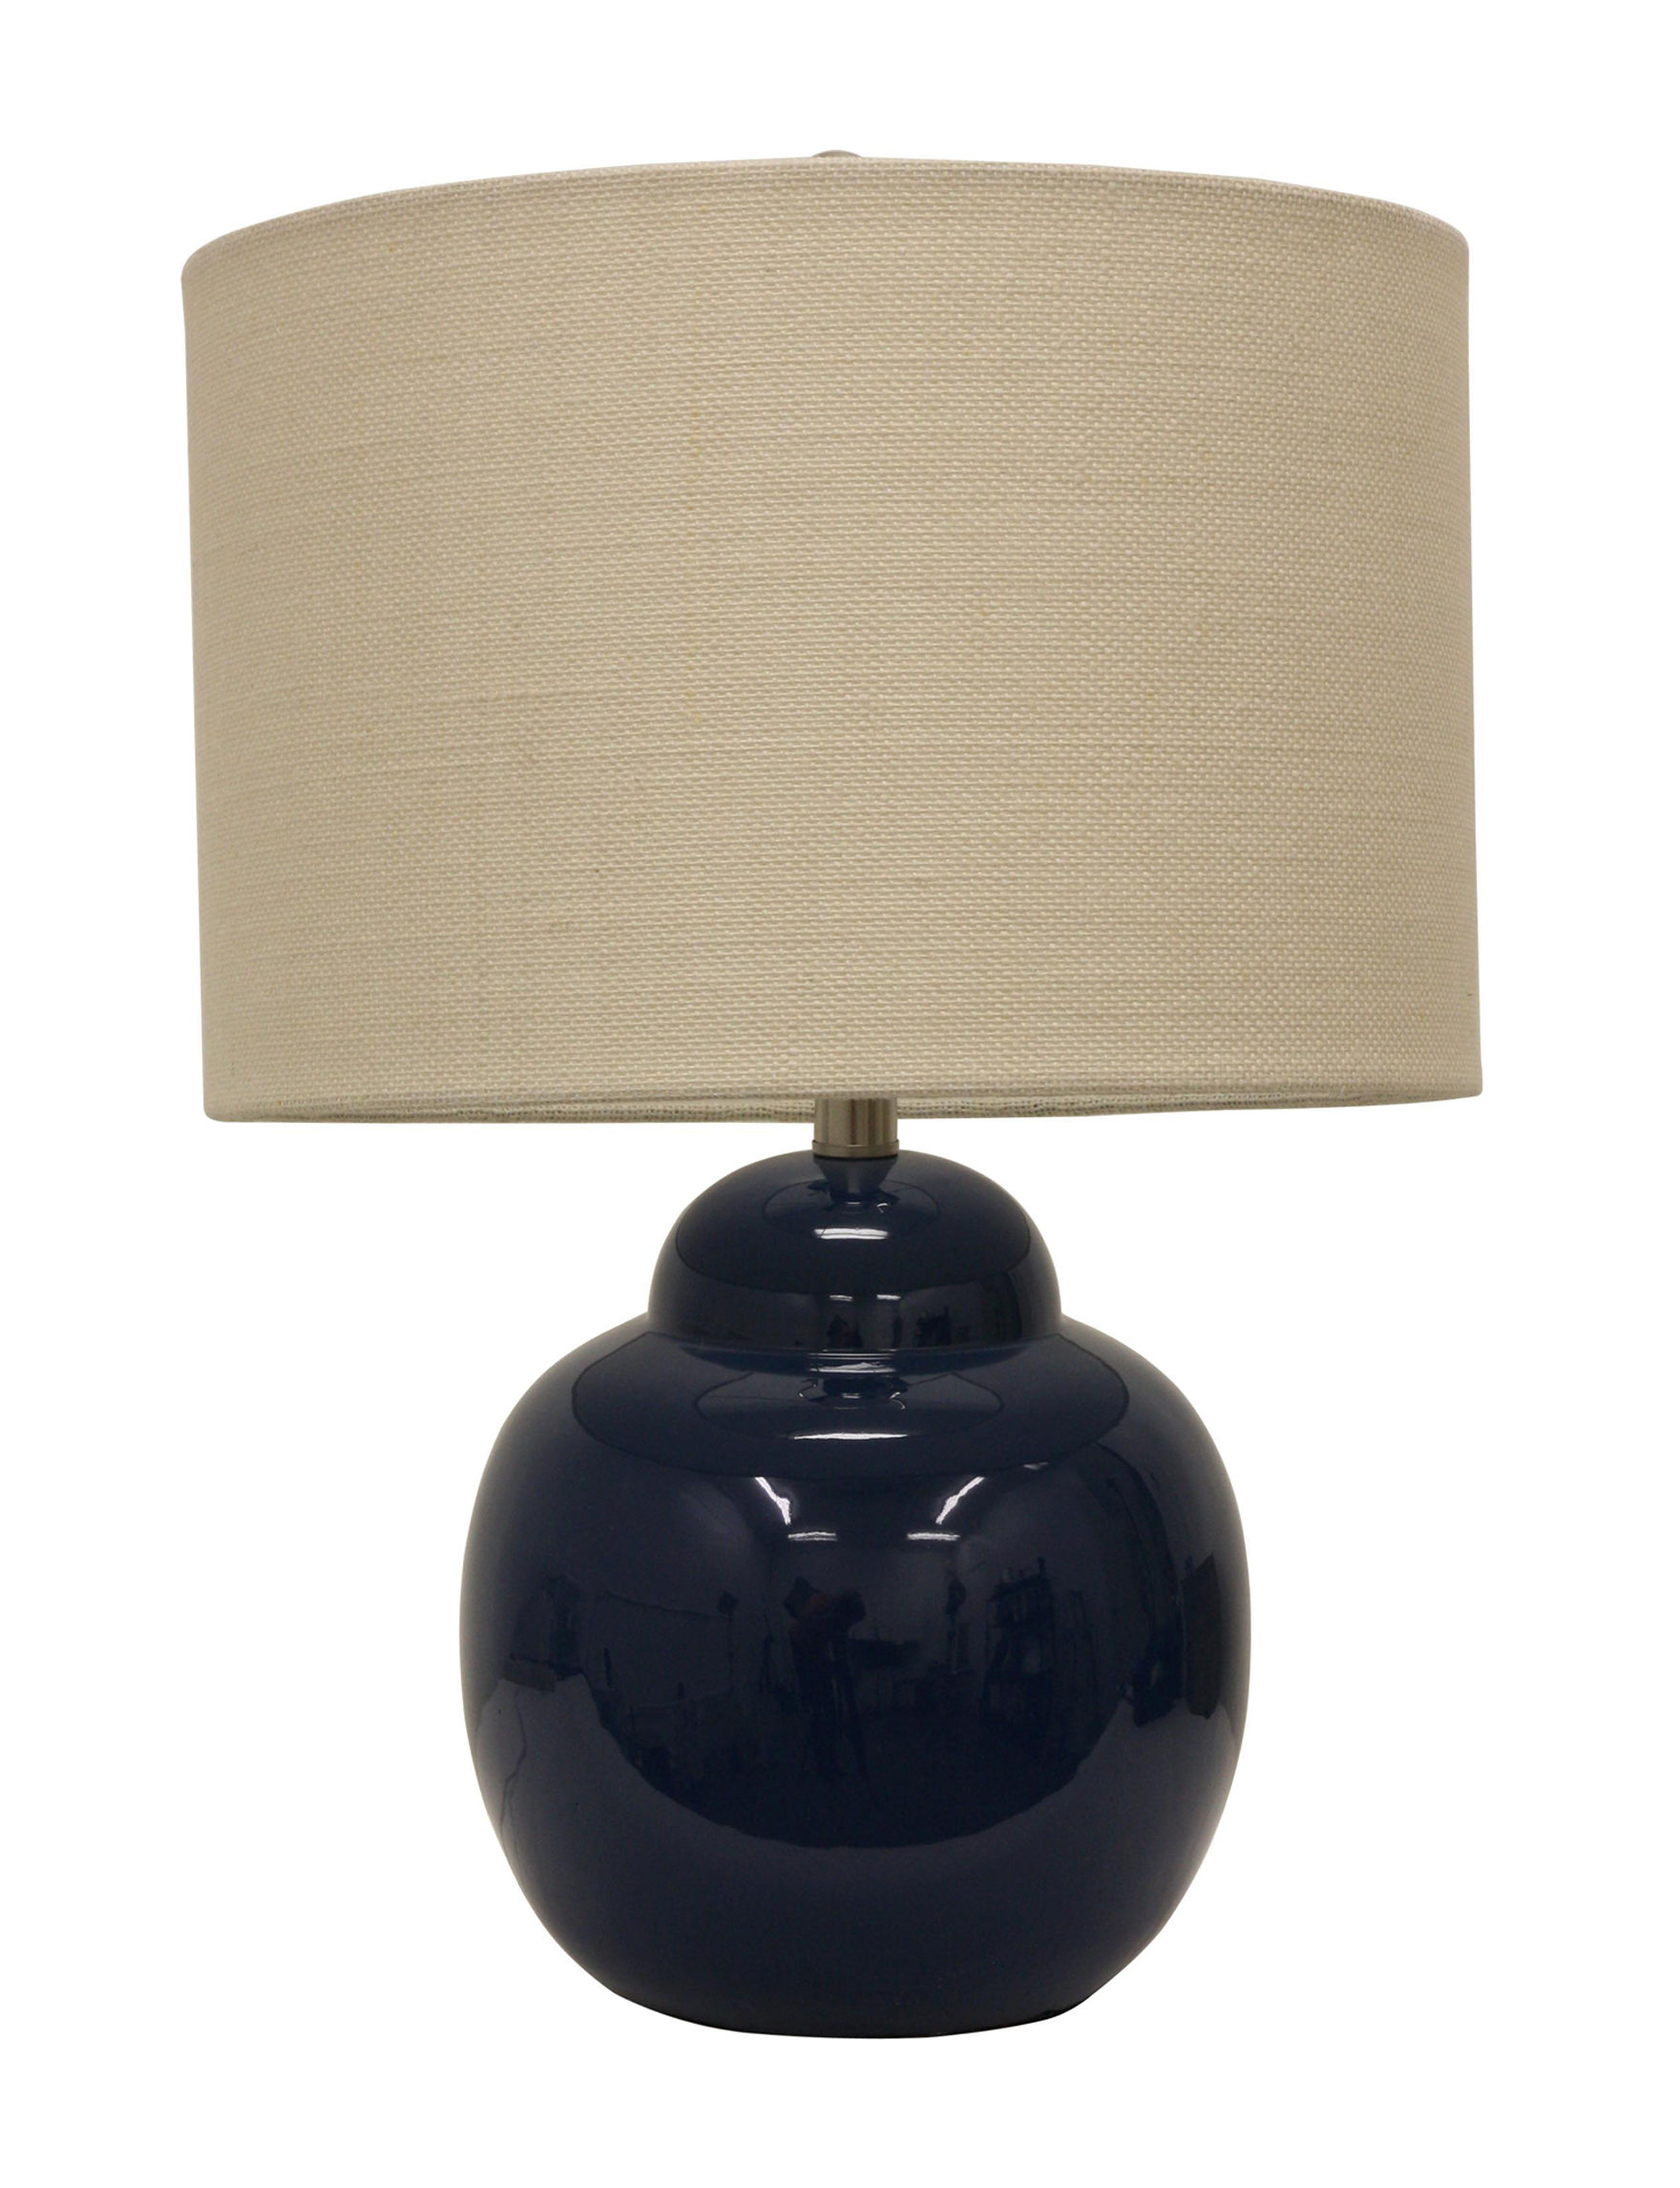 Decor Therapy Navy Table Lamps Lighting & Lamps